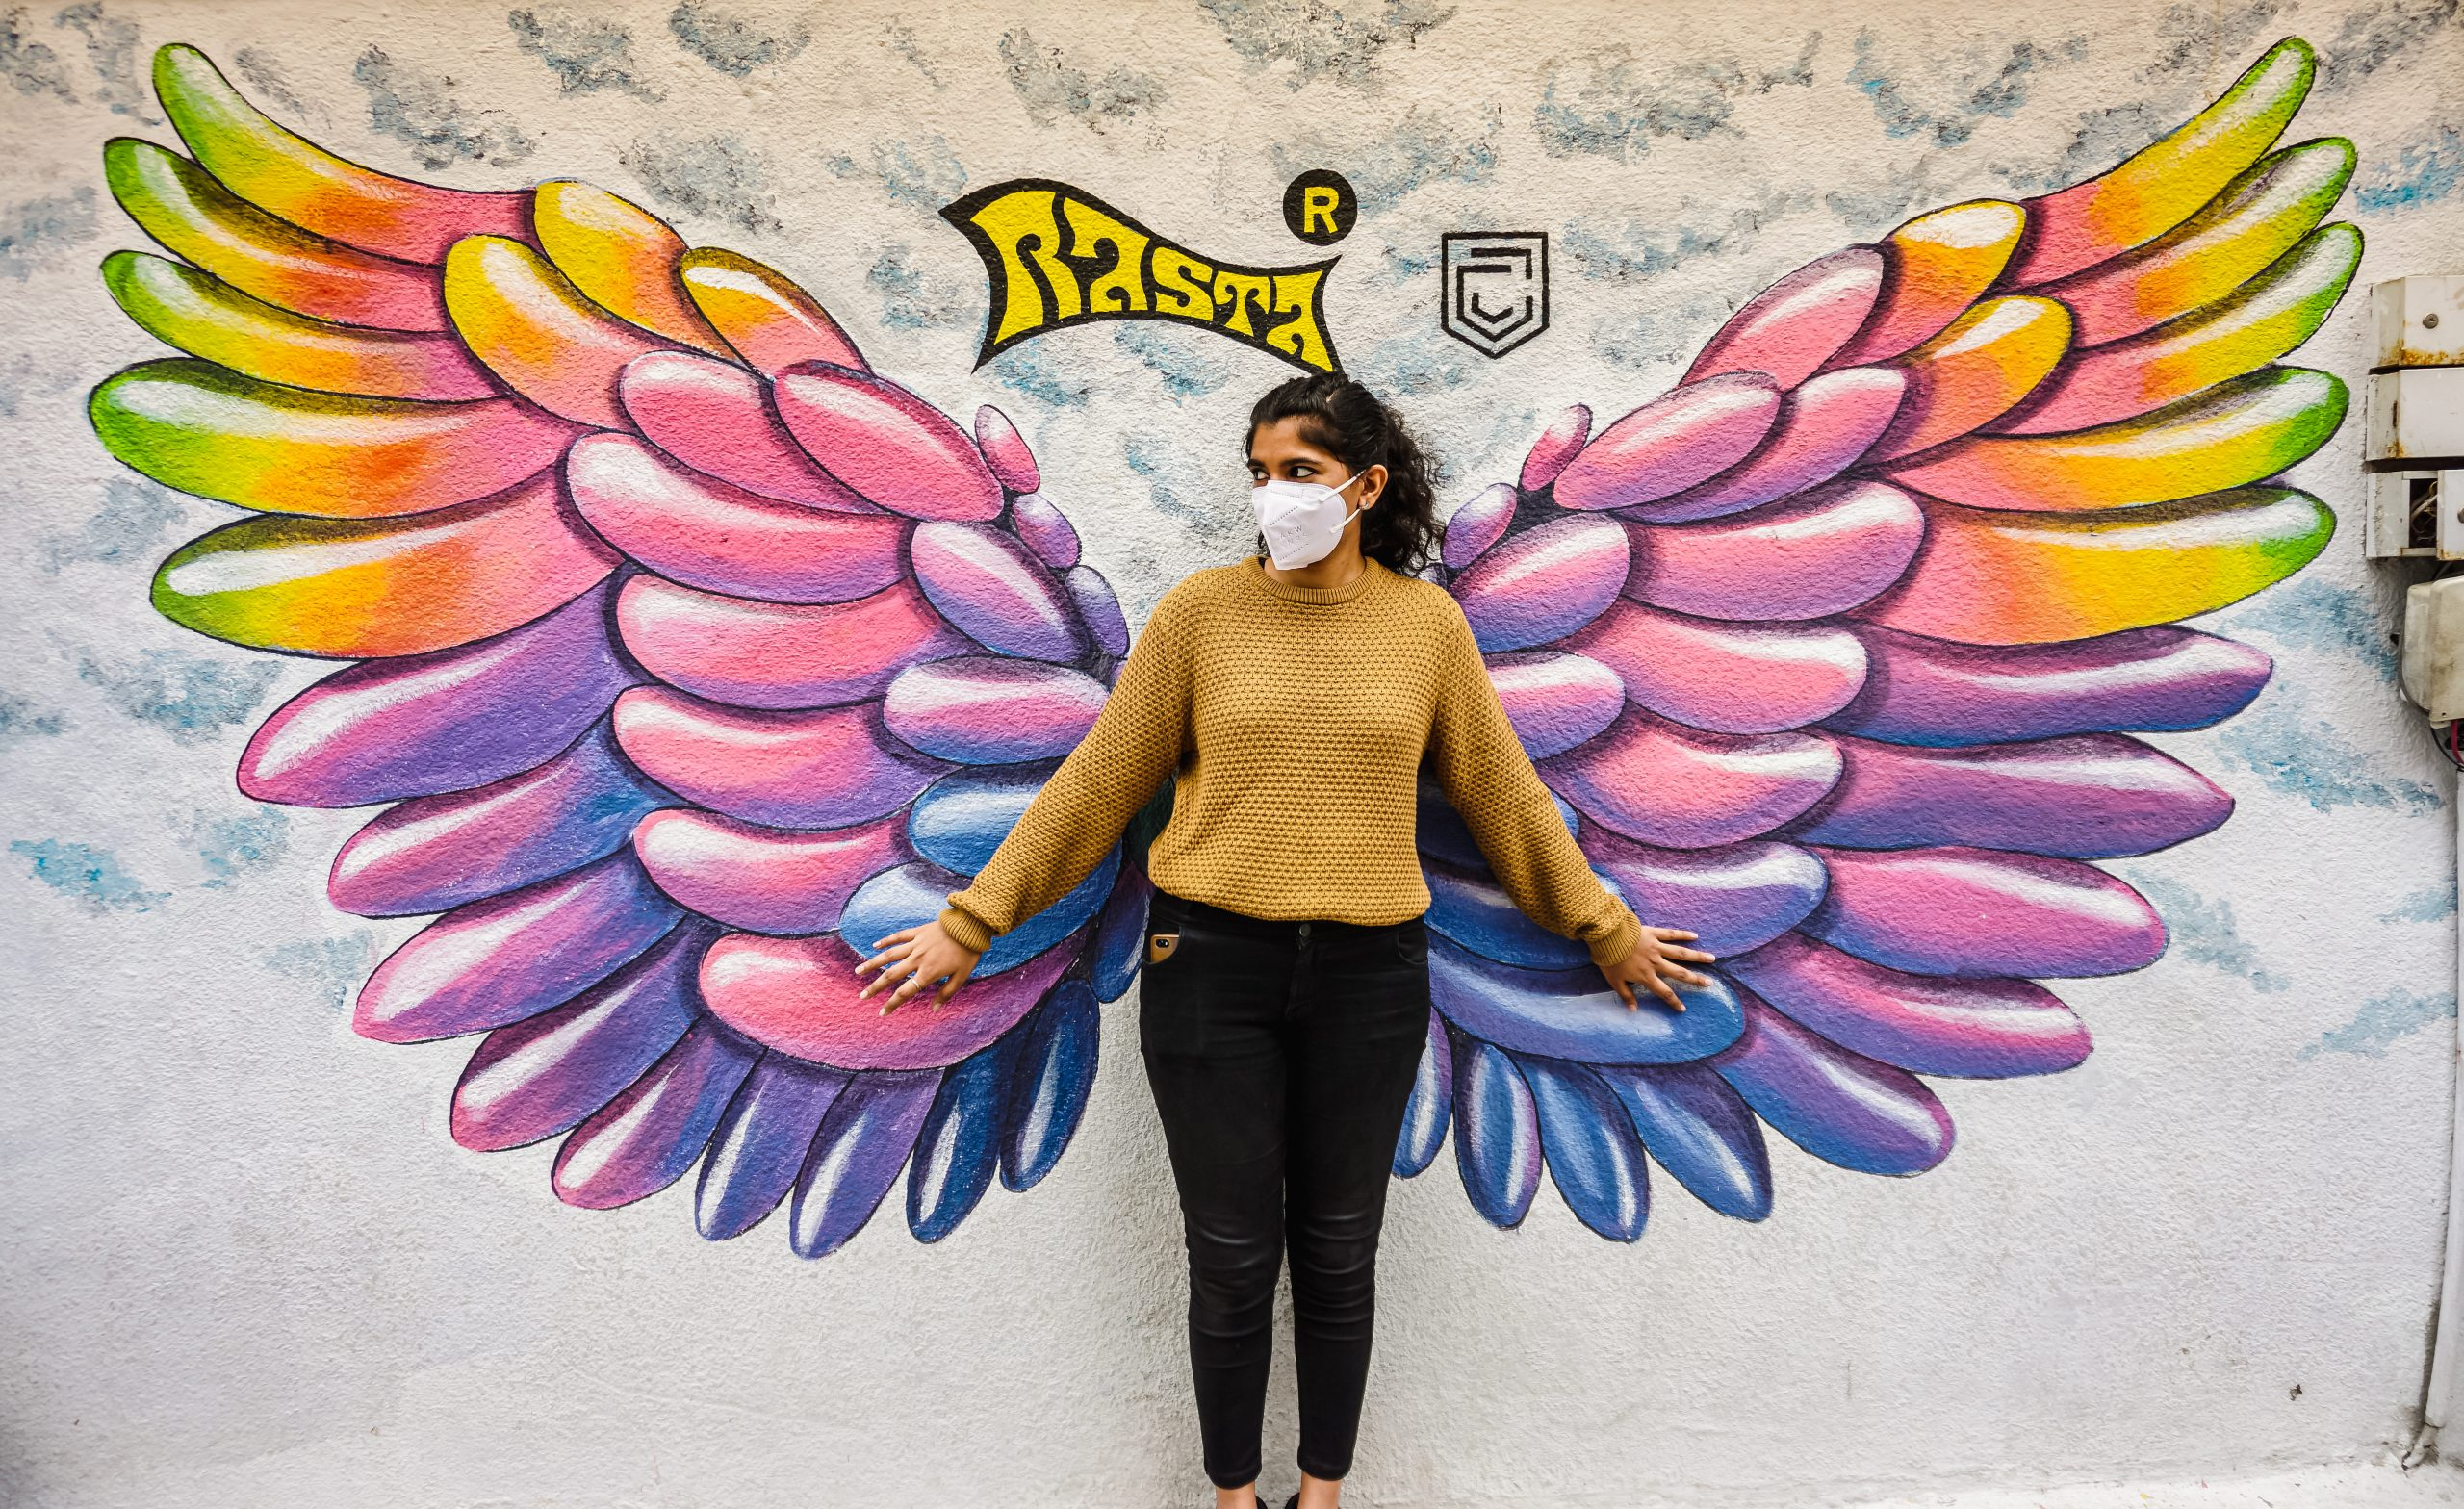 A girl standing near a painted wall